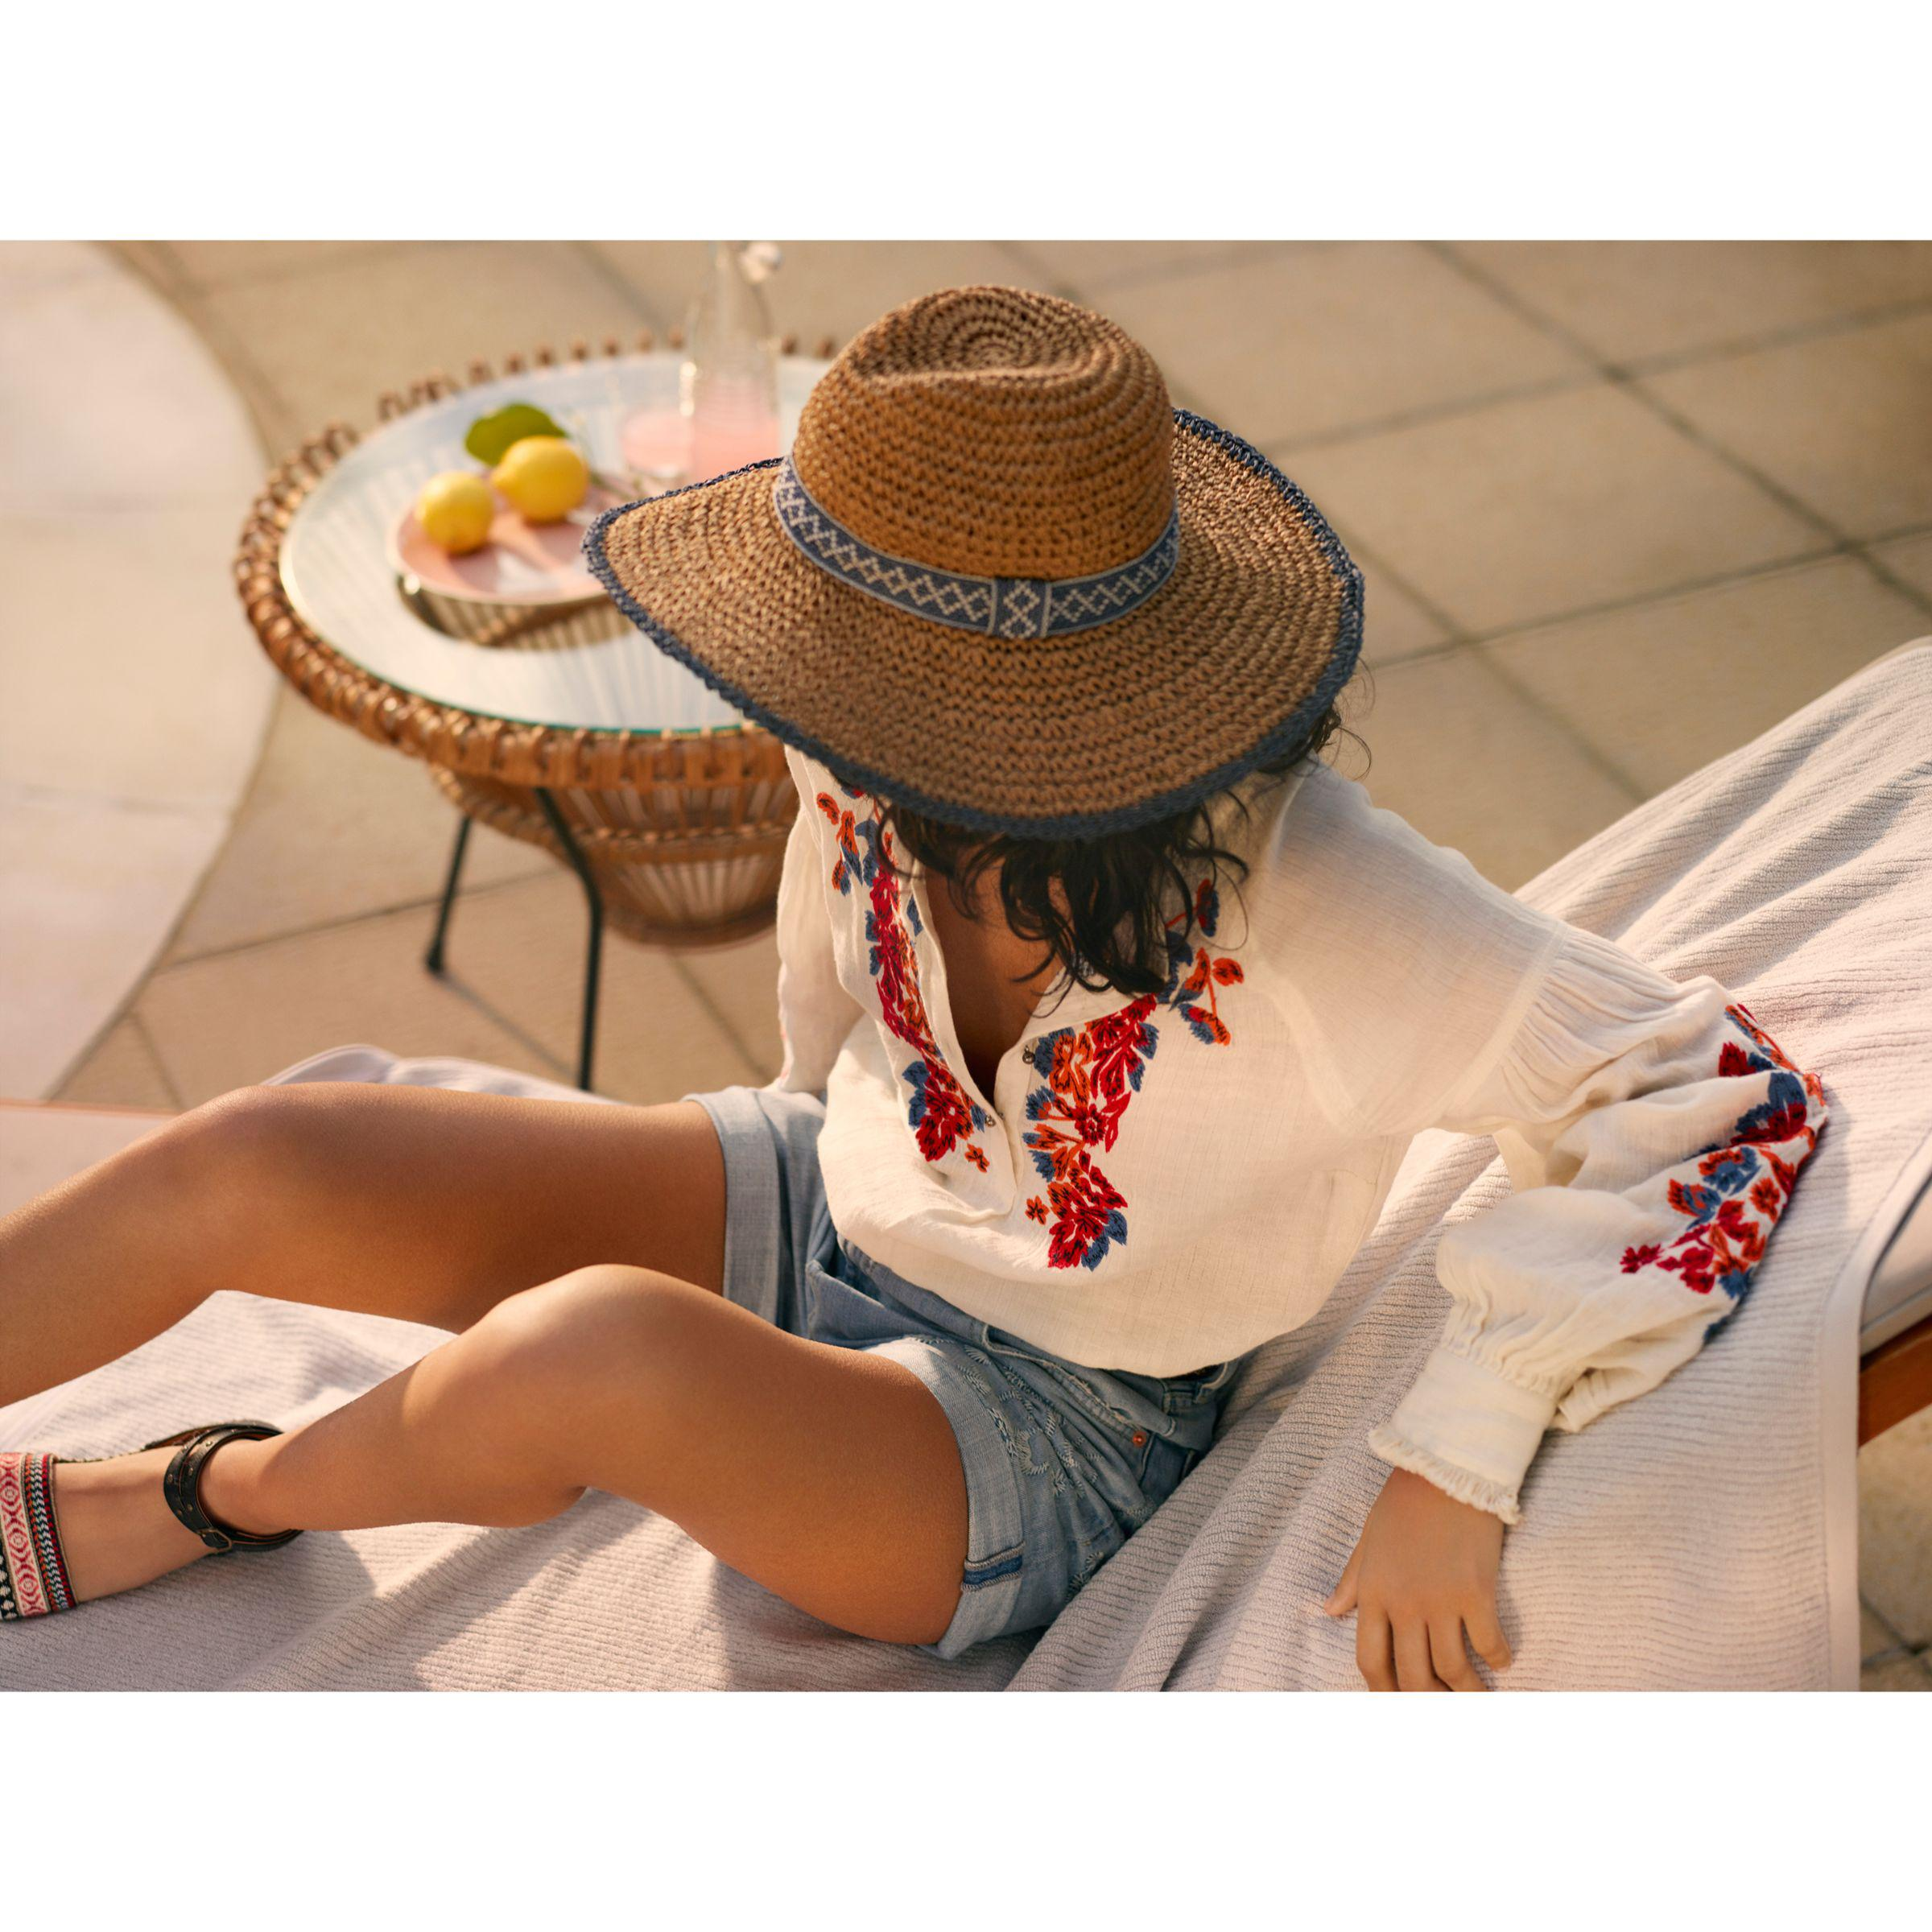 bb1799ad5dc John Lewis And or Aztec Packable Glam Floppy Sun Hat in Natural - Lyst